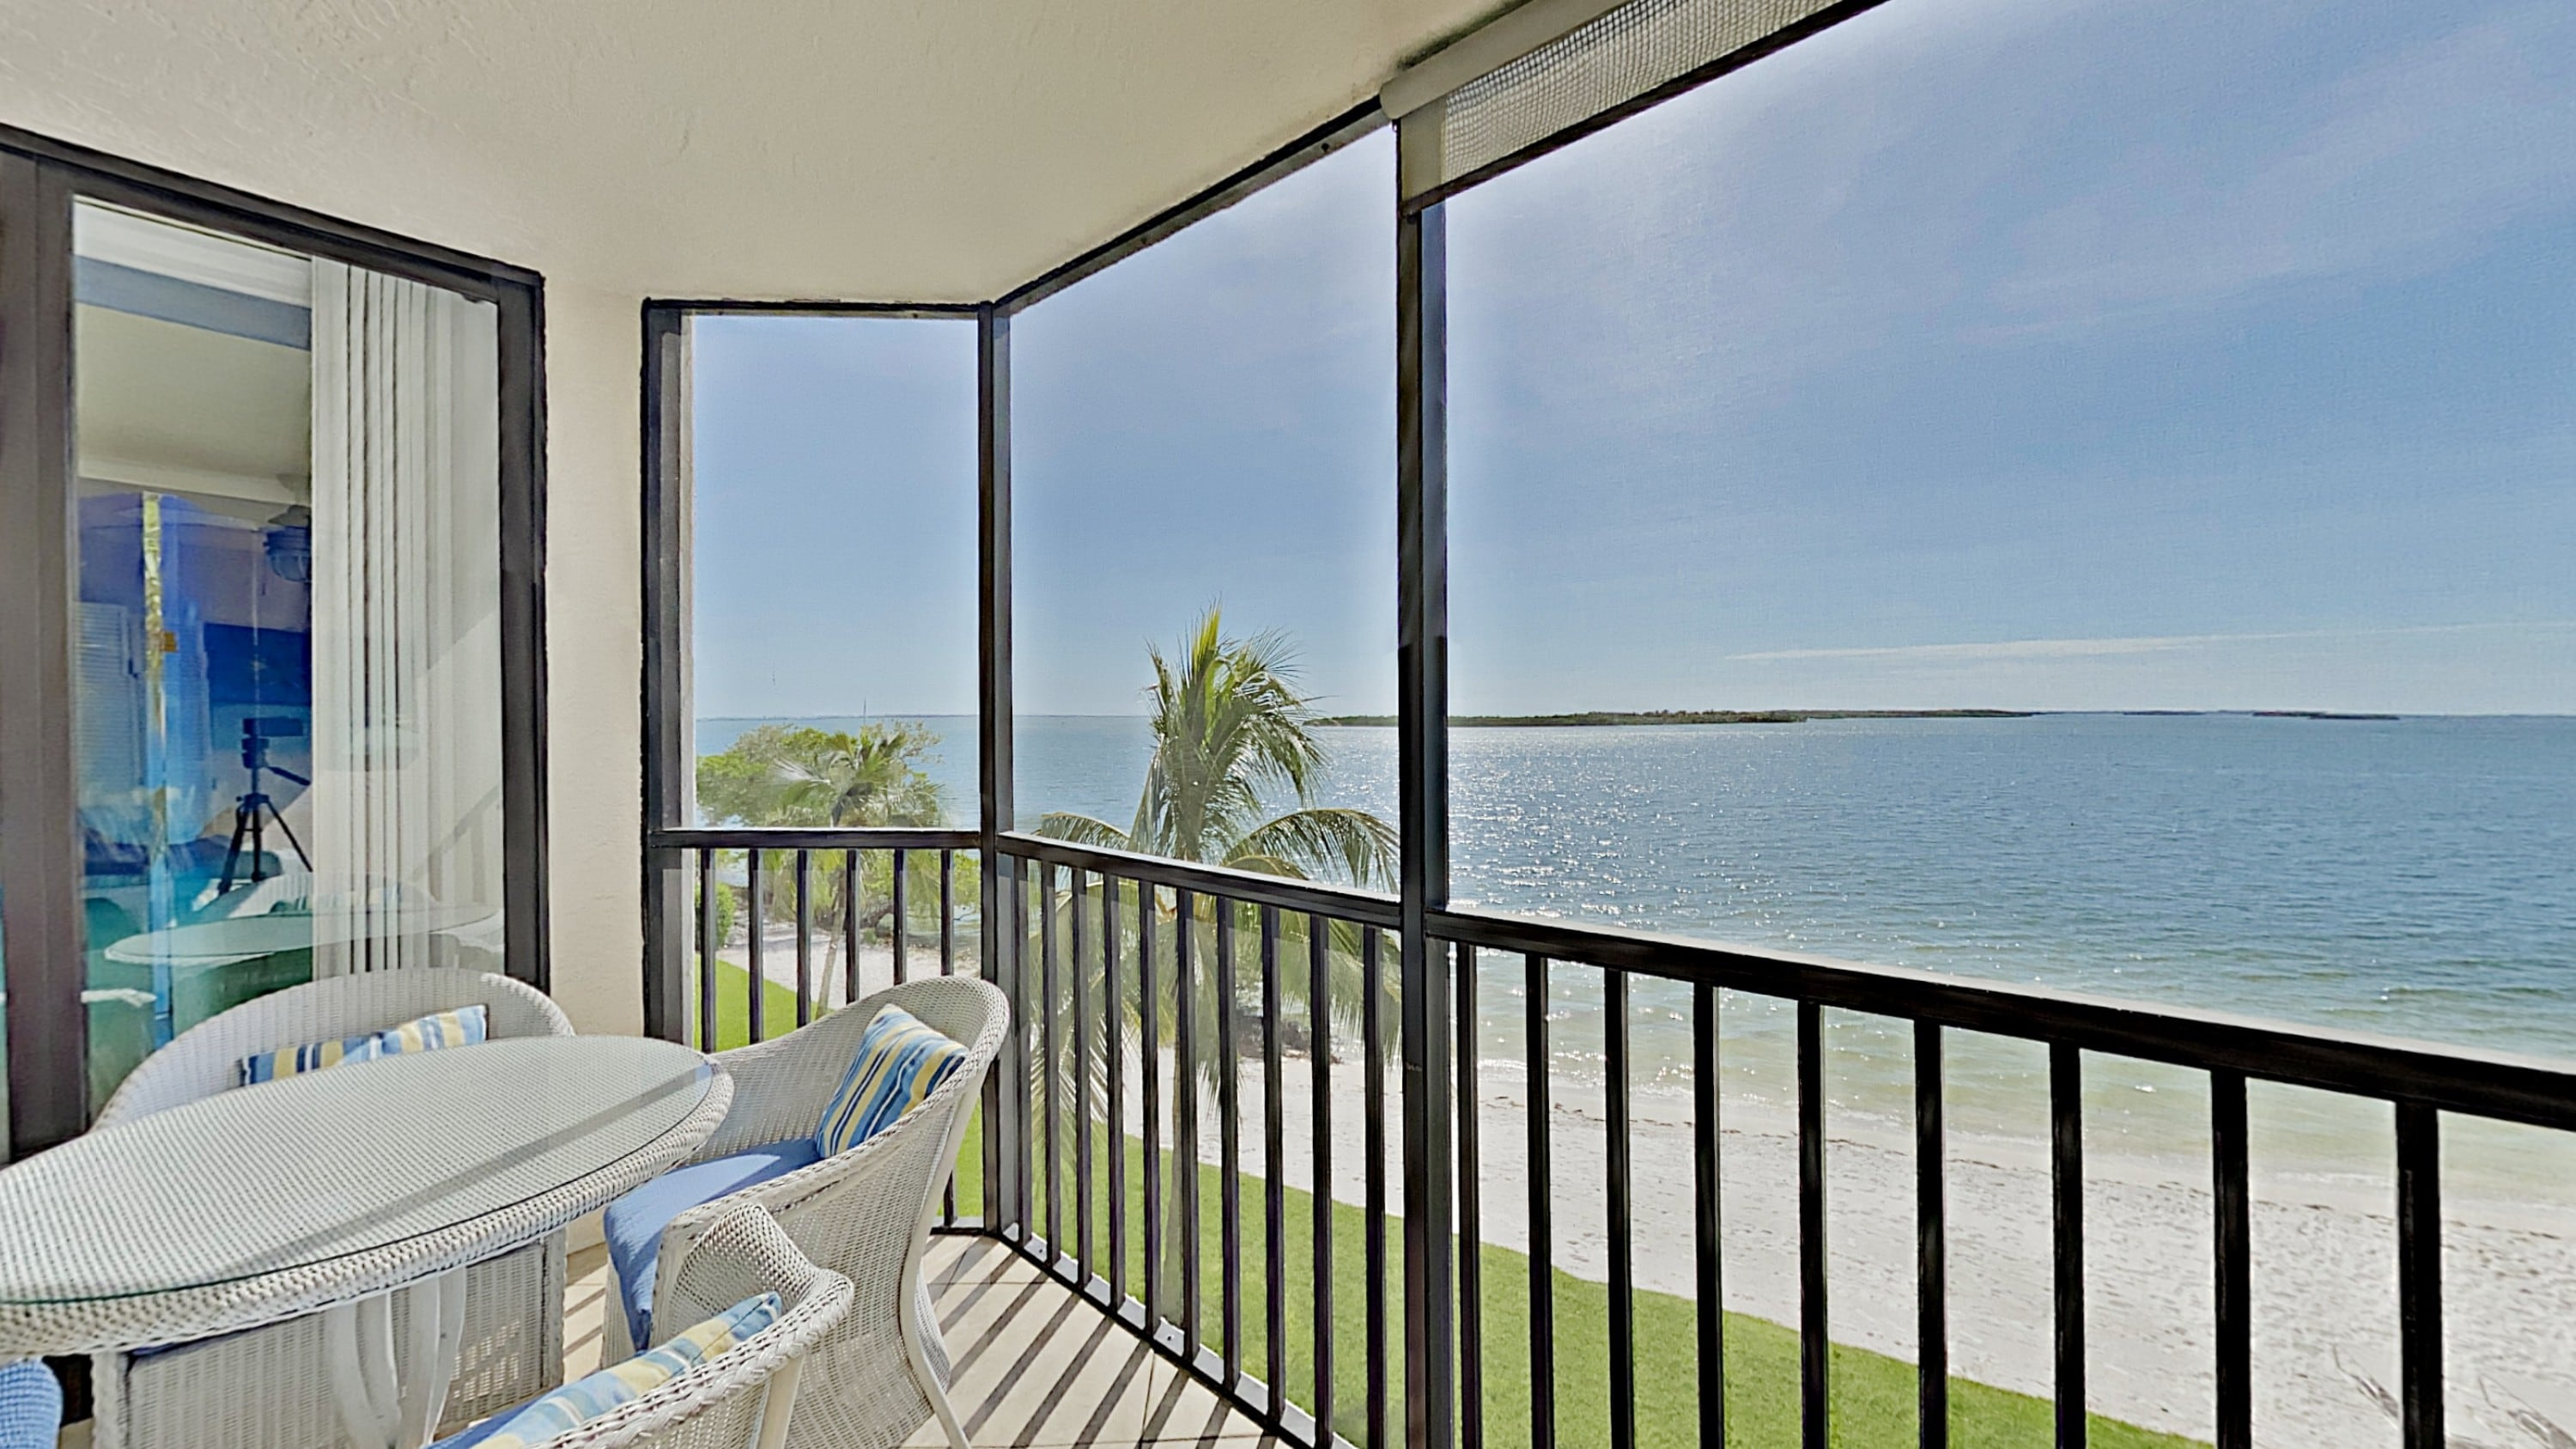 Property Image 2 - Amazing Sanibel Sunsets 2 Bed Condo with Private Lanai